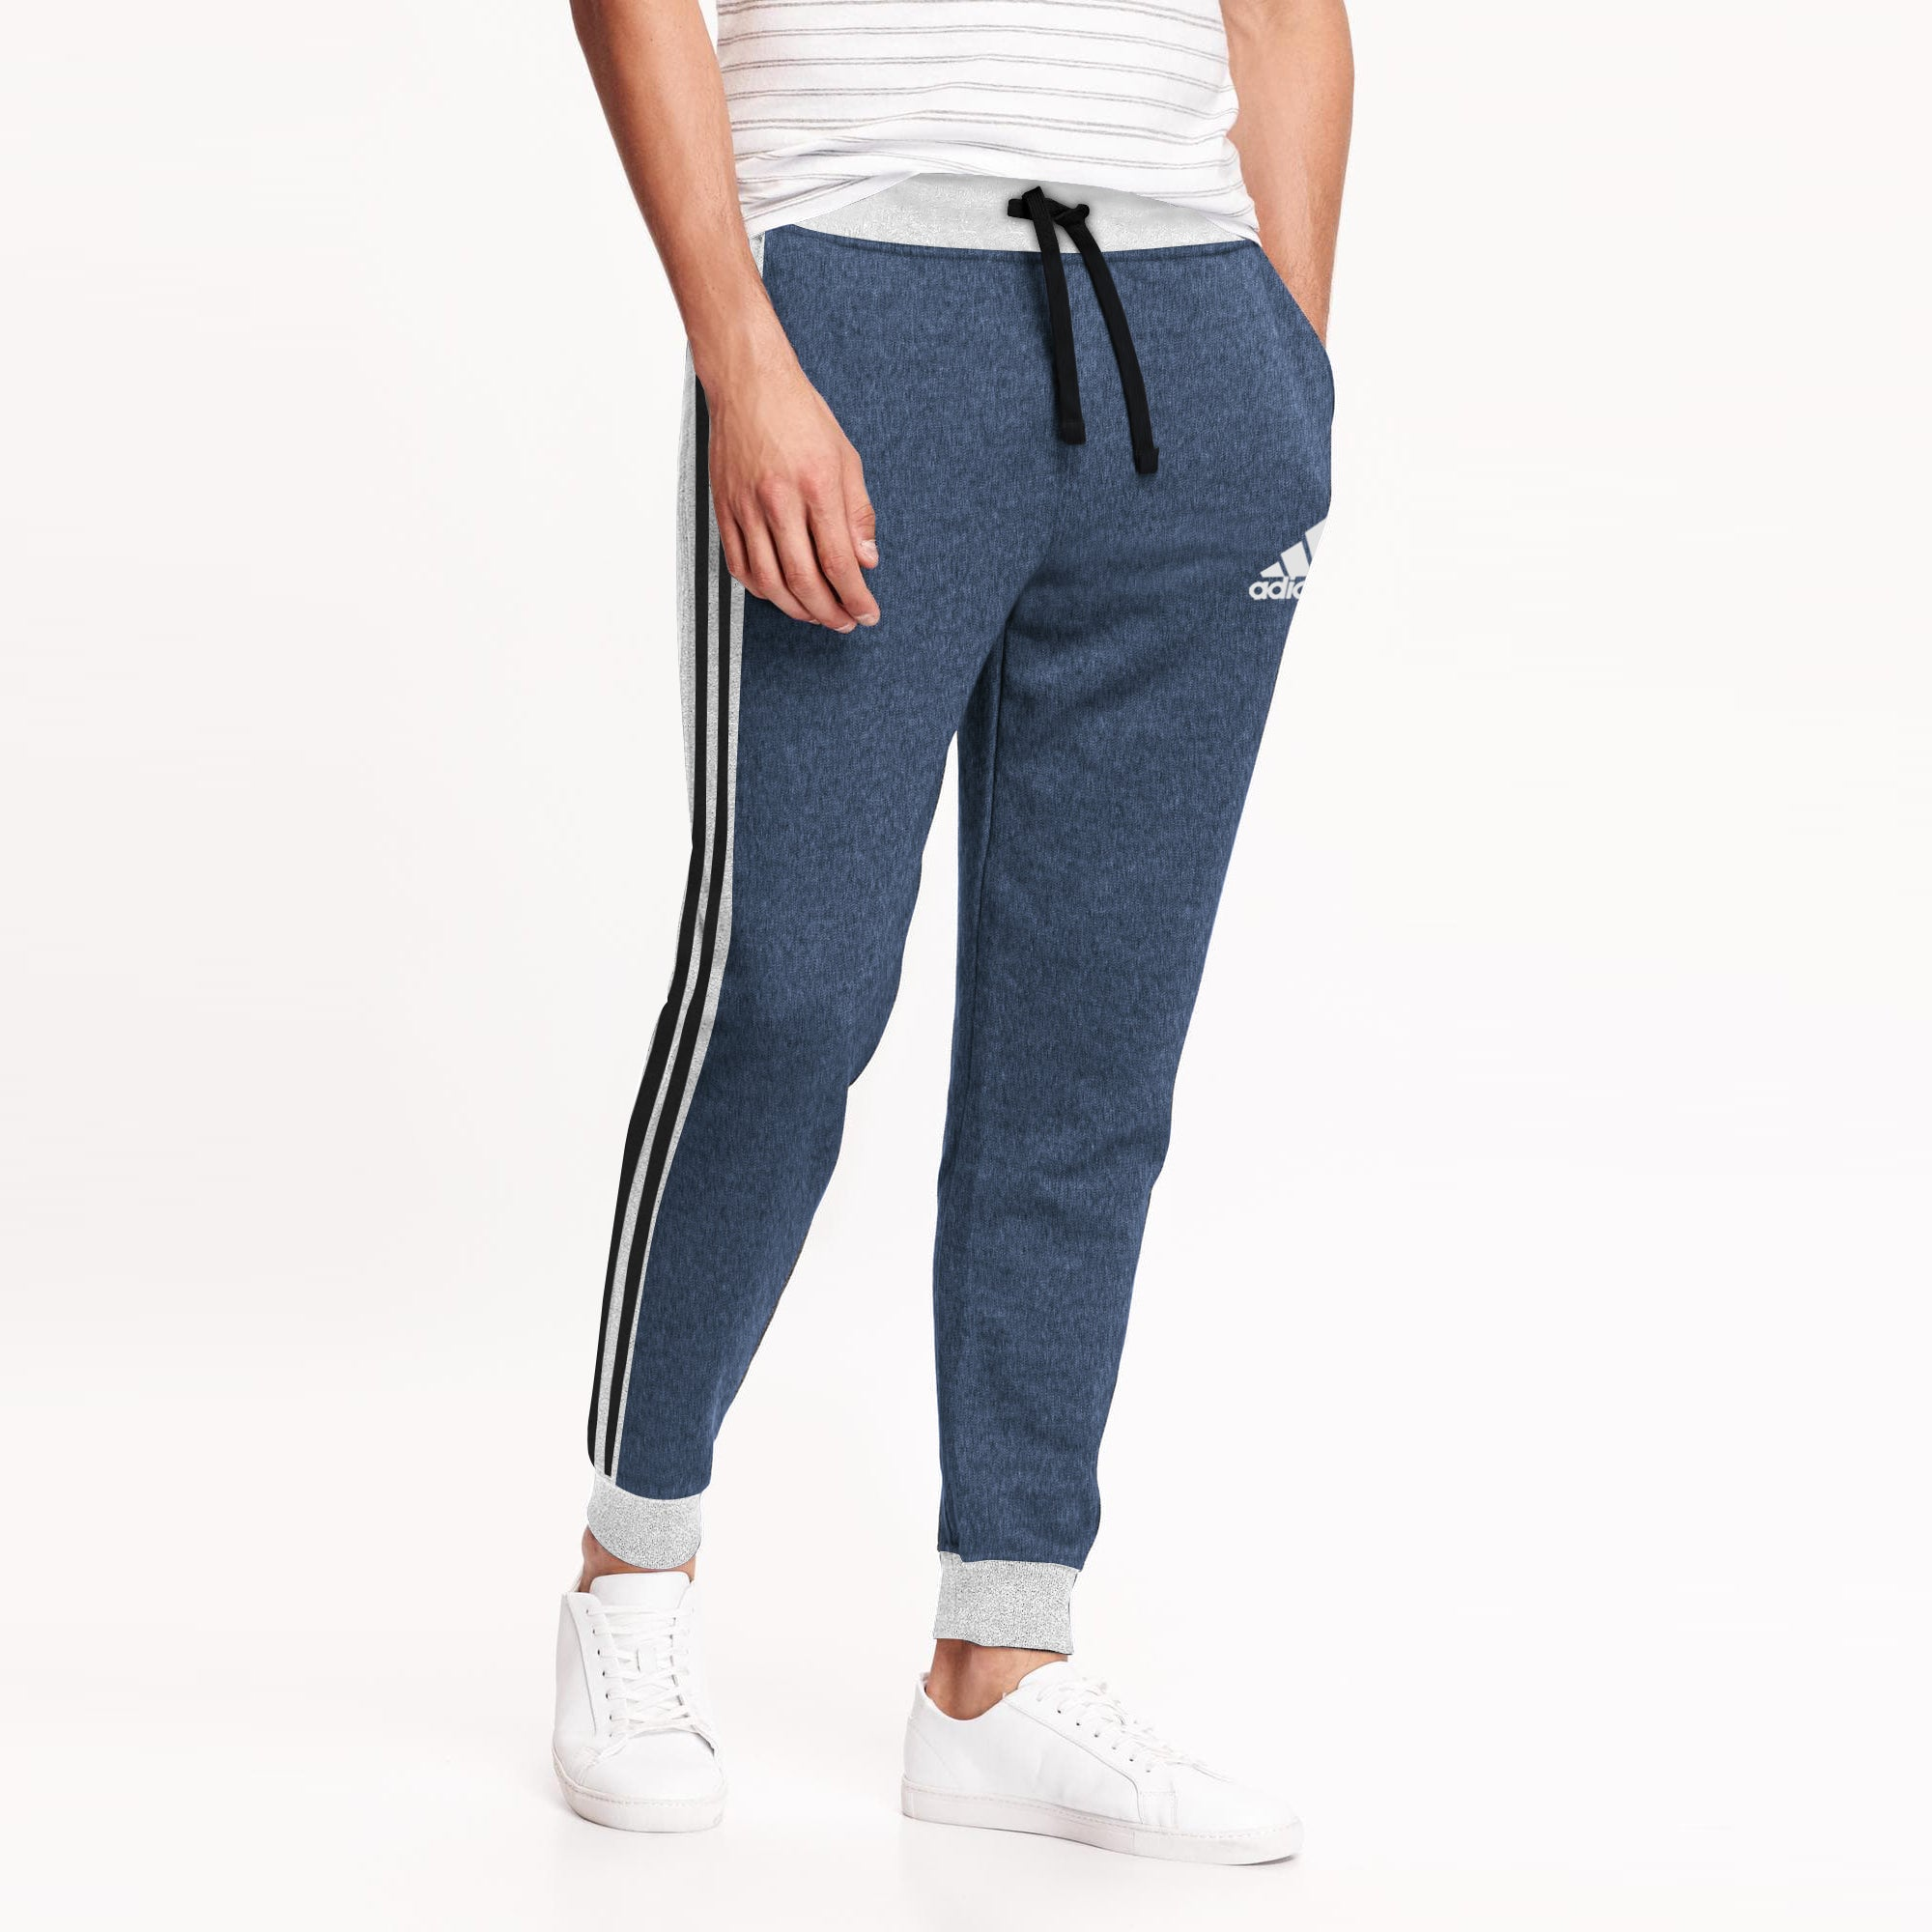 Adidas Single Jersey Slim Fit Jogger Trouser For Men-Navy Melange With Grey Melange & Black Stripe-BE8848